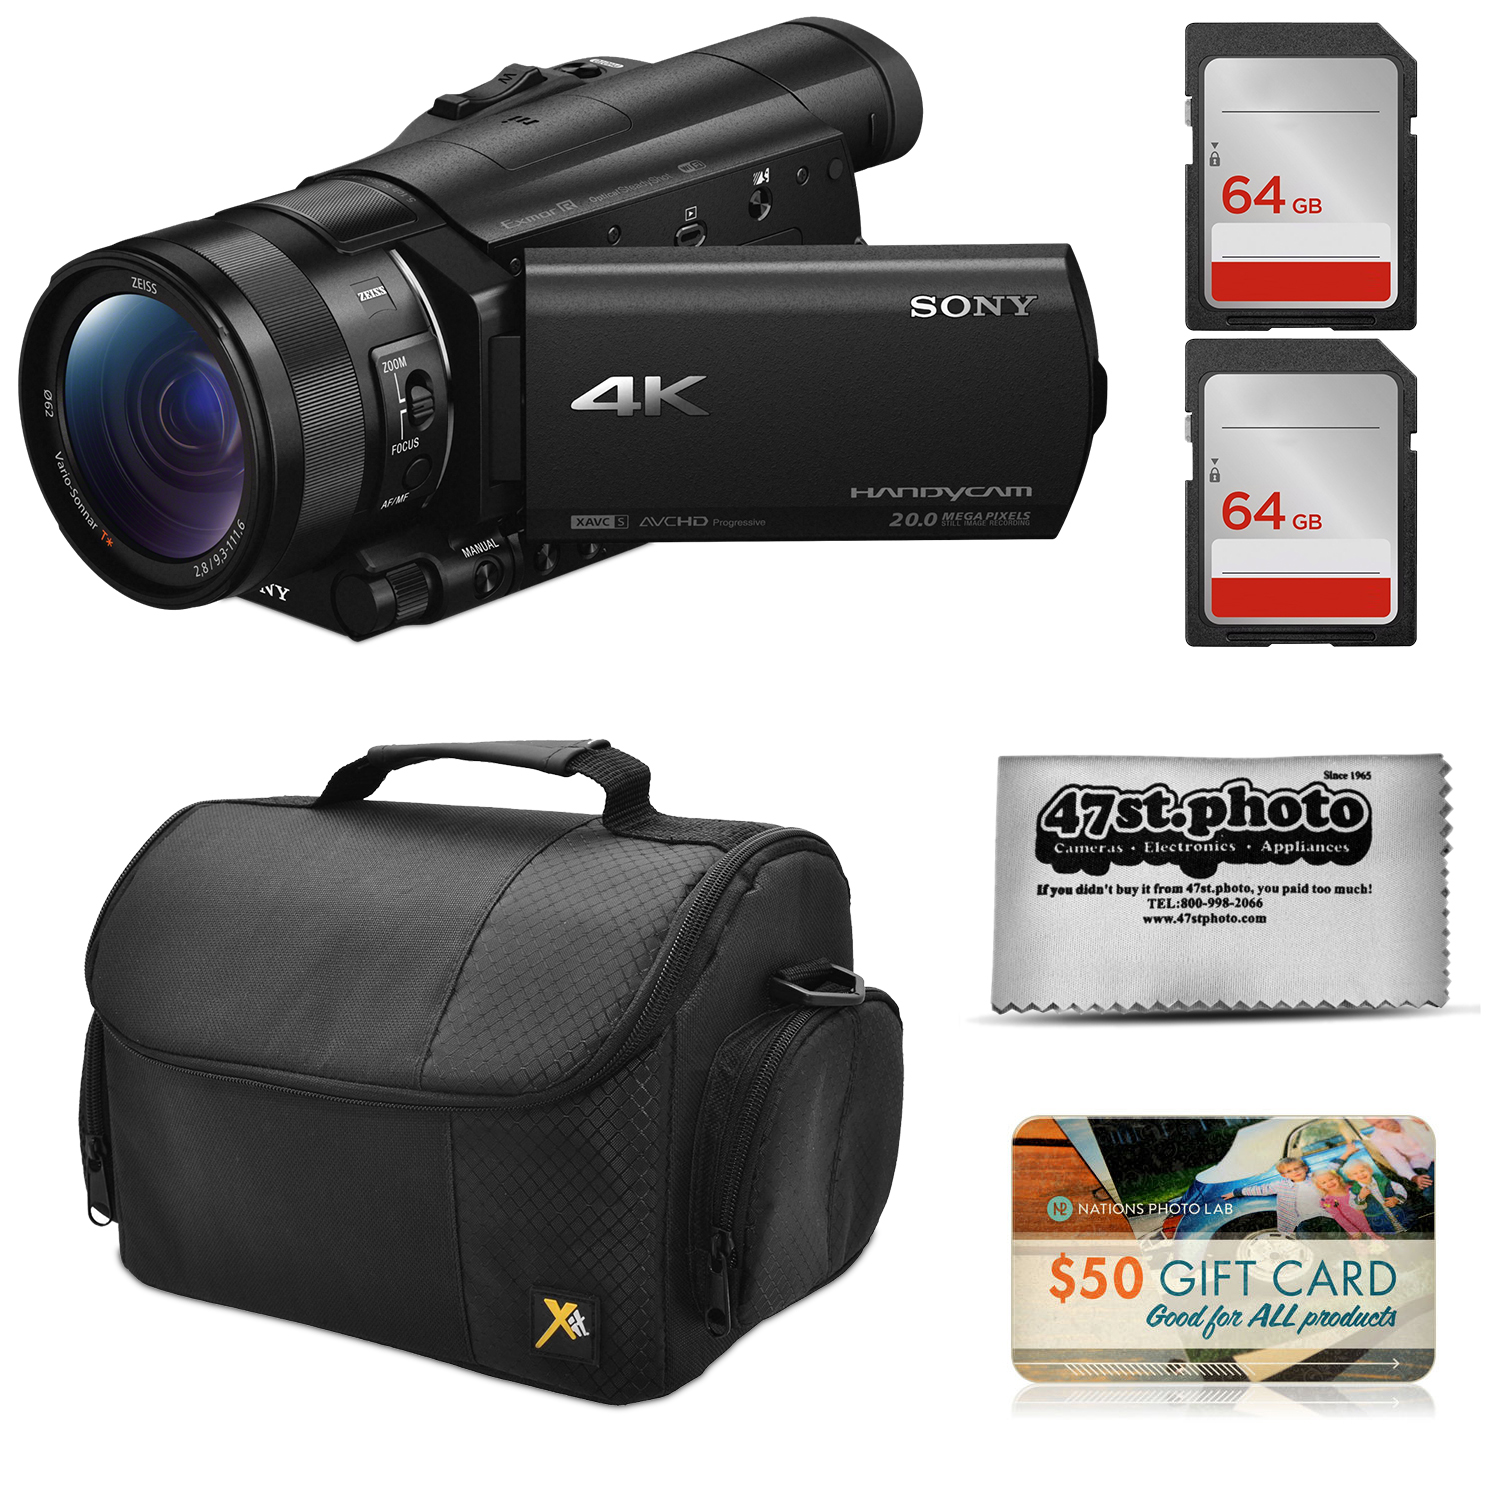 Sony FDR-AX100 4K Ultra HD Camcorder Video Camera + 128GB Memory, Carrying Case, Gift Card, Microfiber Cleaning Cloth